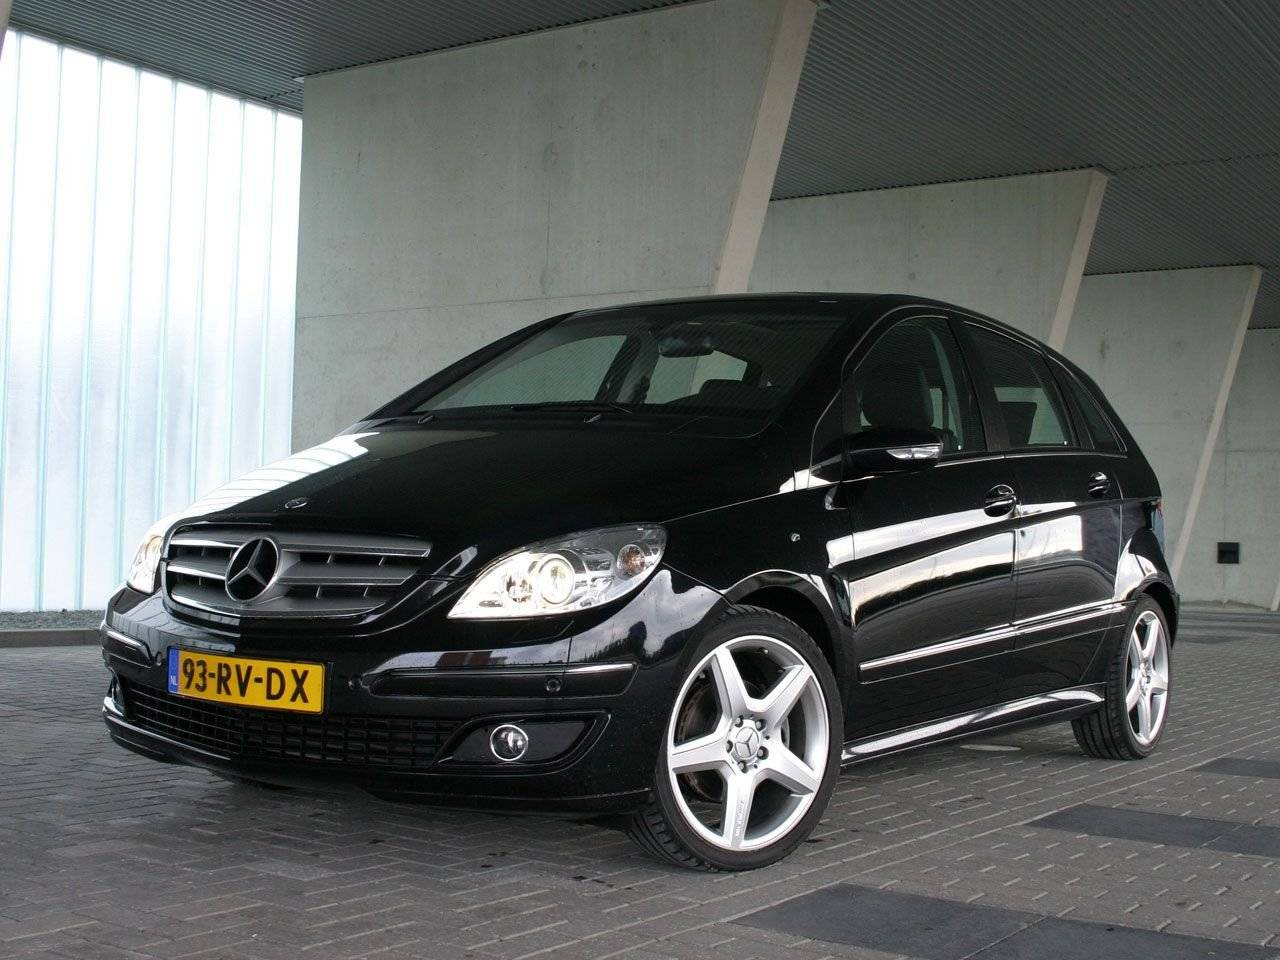 test zakelijke gezinsauto mercedes b klasse autotests. Black Bedroom Furniture Sets. Home Design Ideas